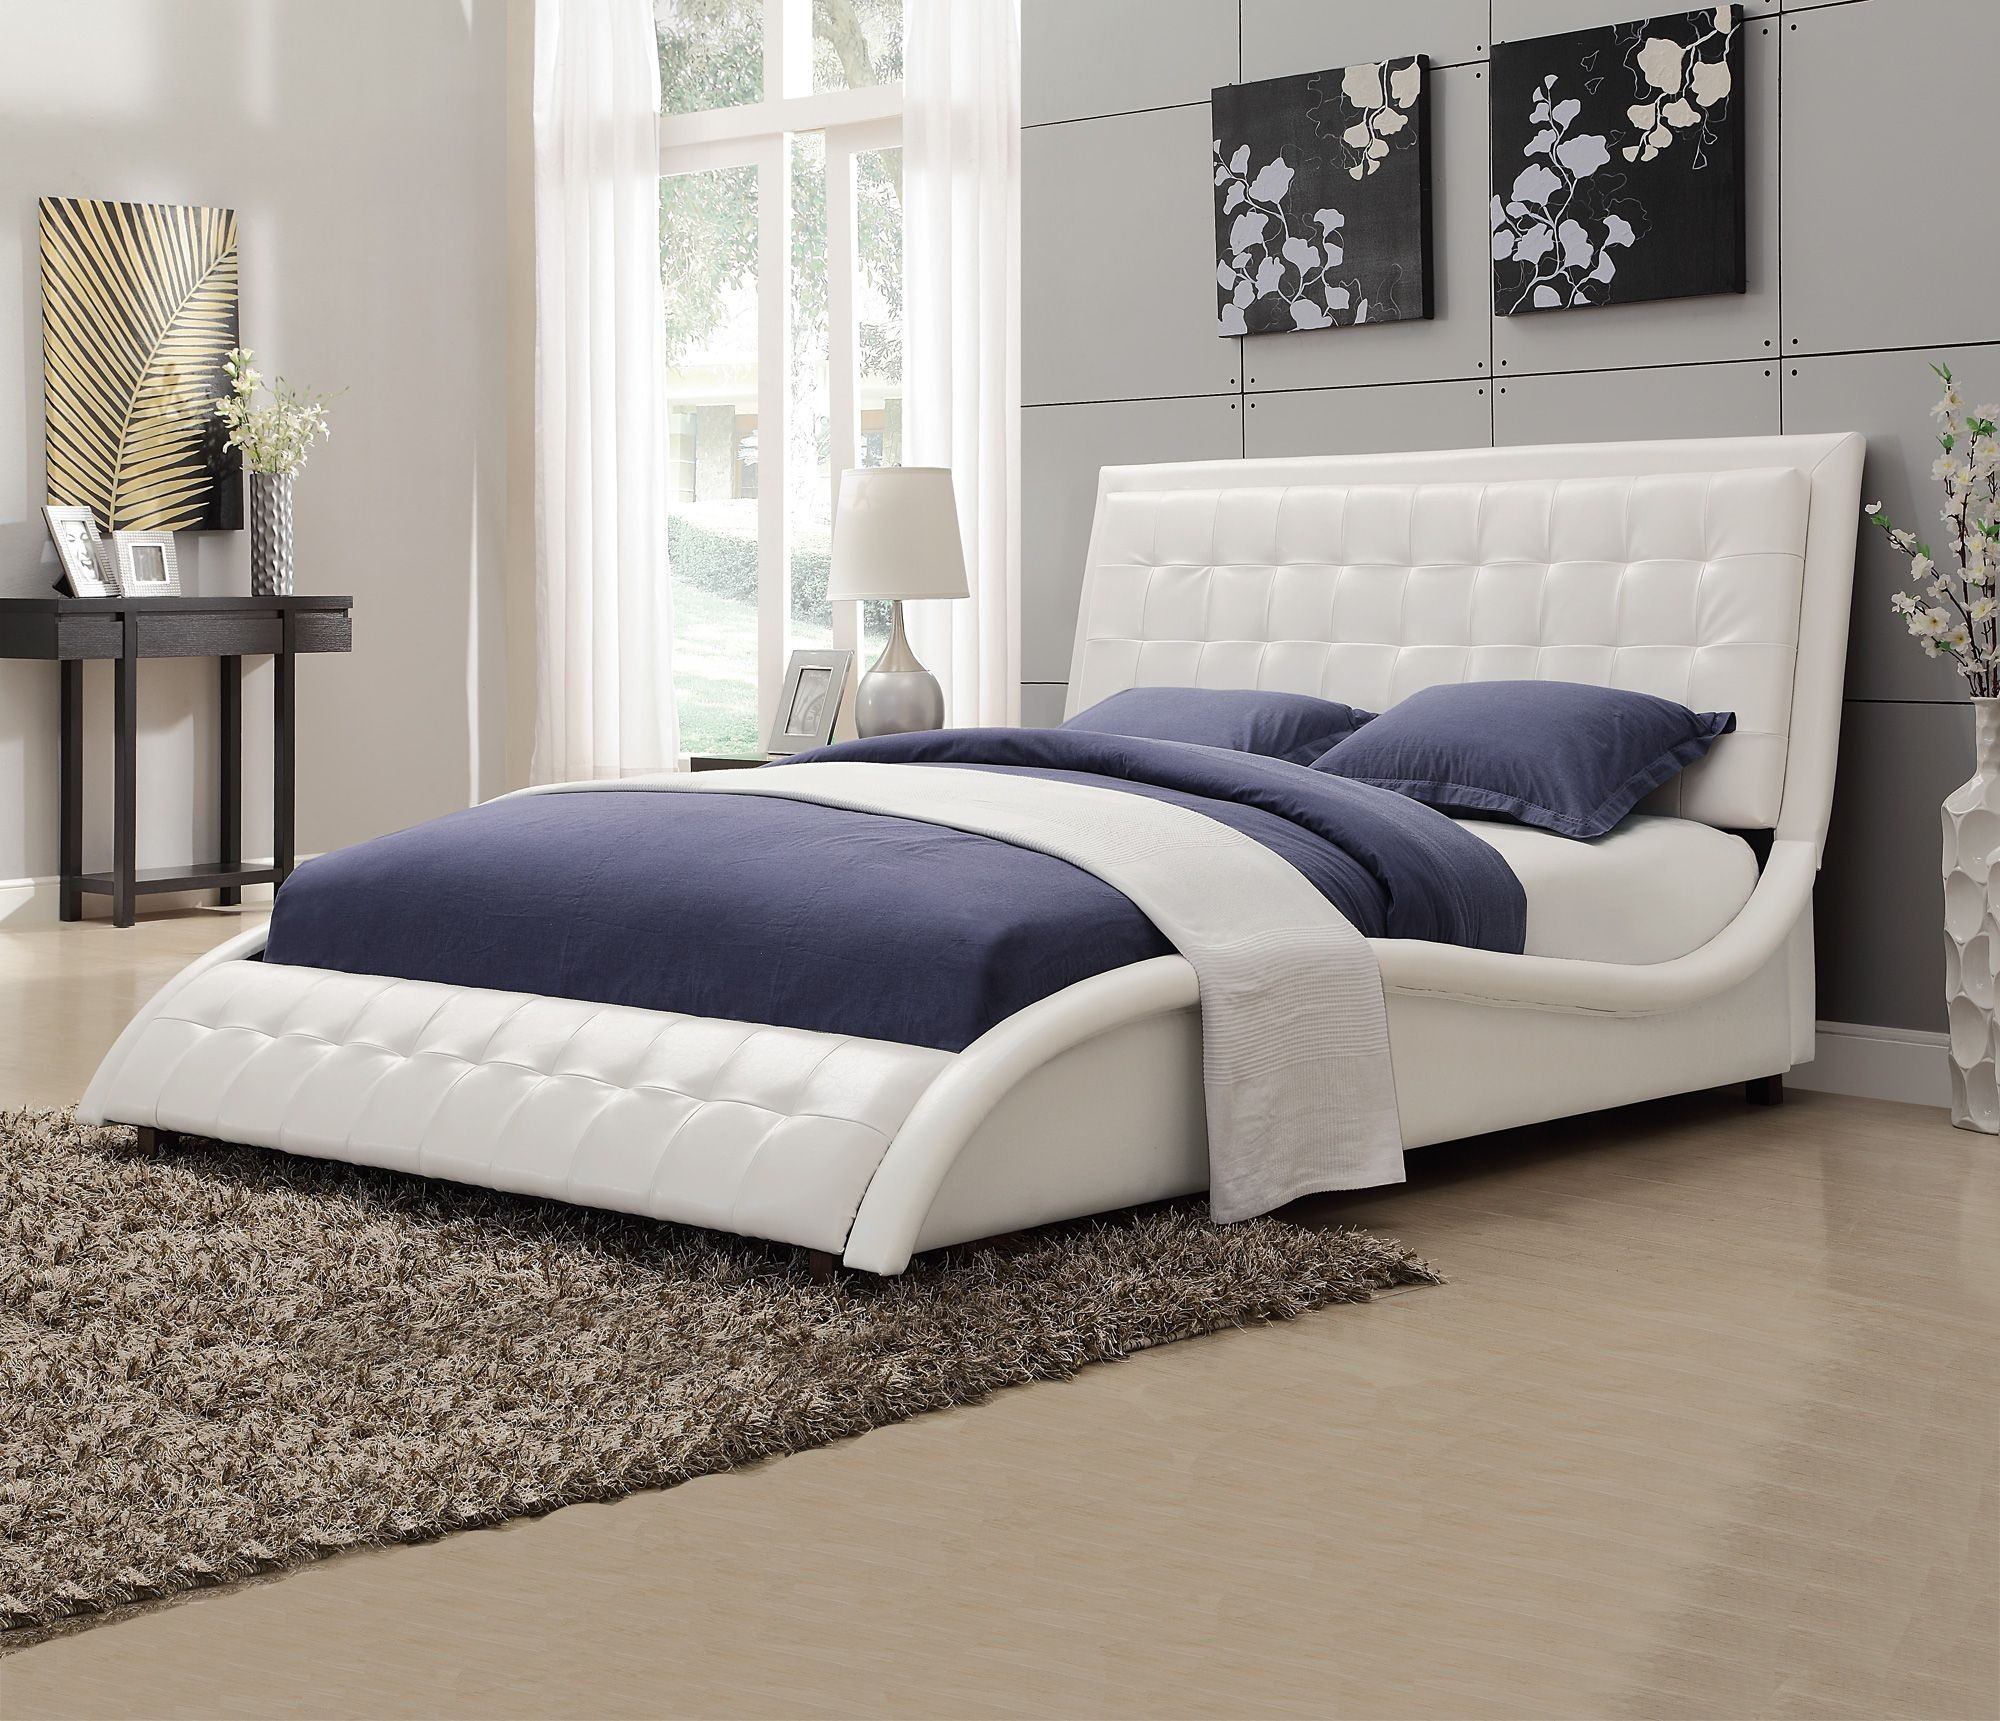 Cheap Nice Furniture For Sale: Tully White King Platform Upholstered Bed From Coaster